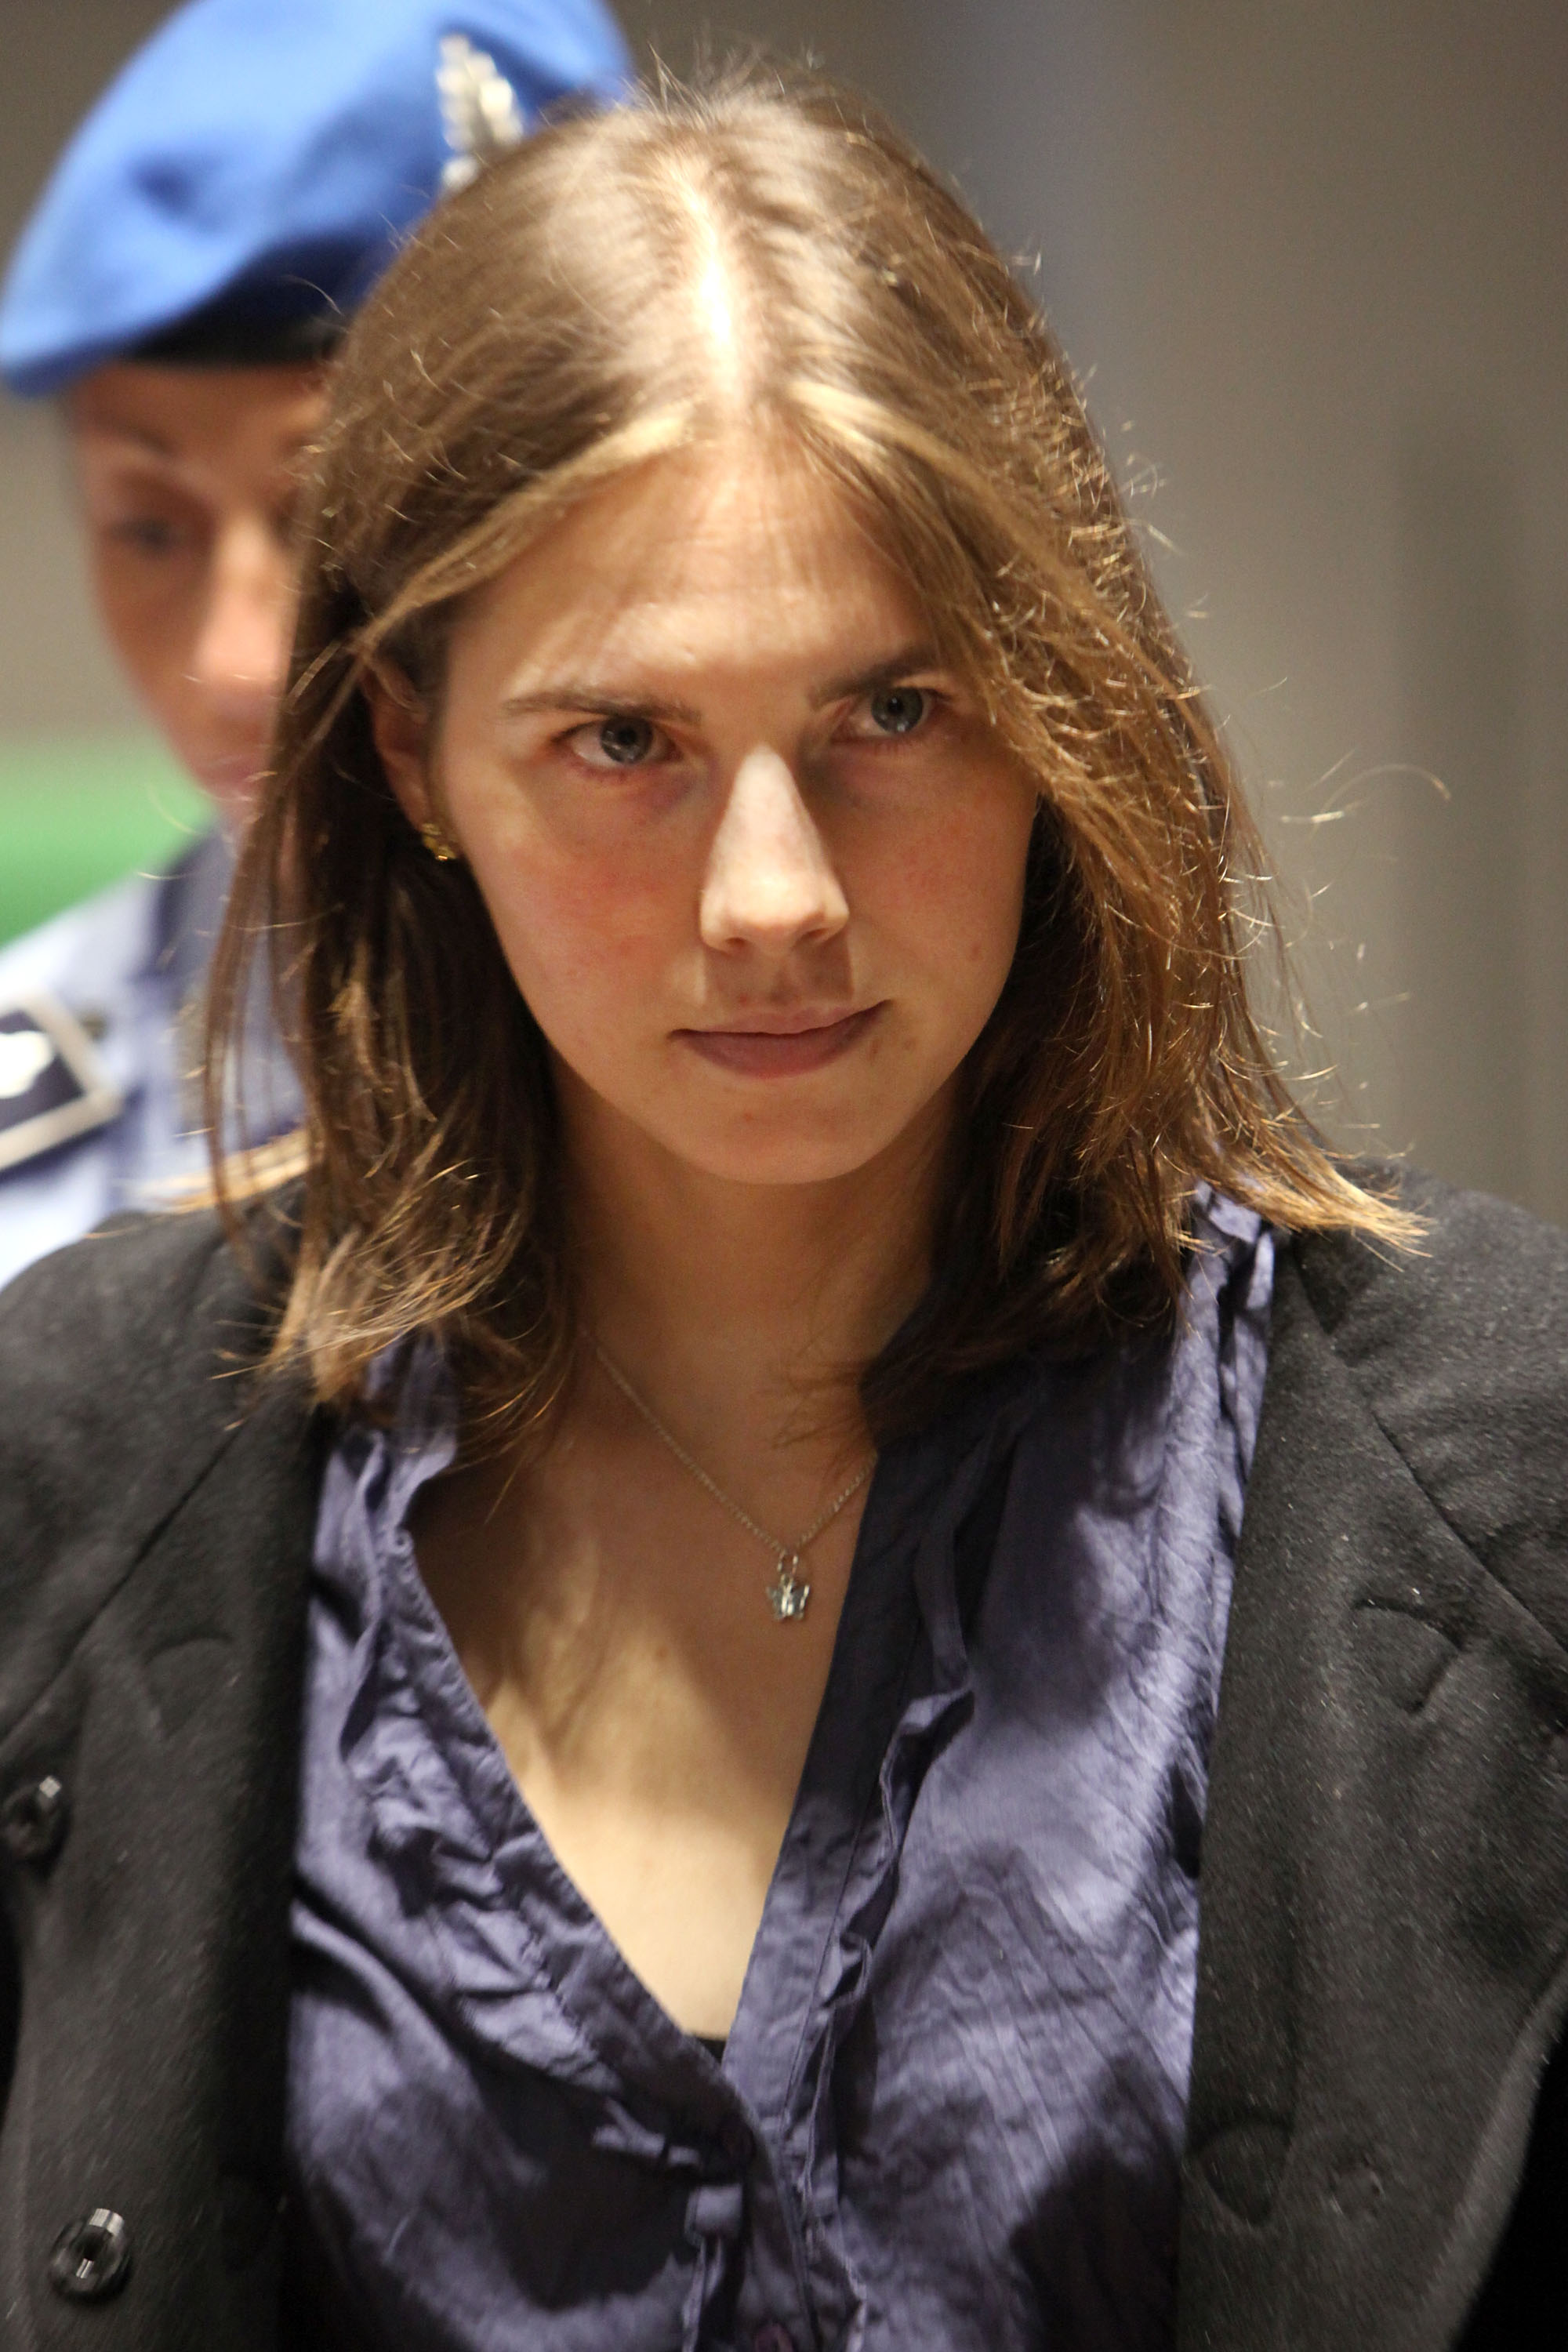 Amanda Knox attends her appeal hearing at Perugia's Court of Appeal on September 30, 2011, in Perugia, Italy. (Getty Images)